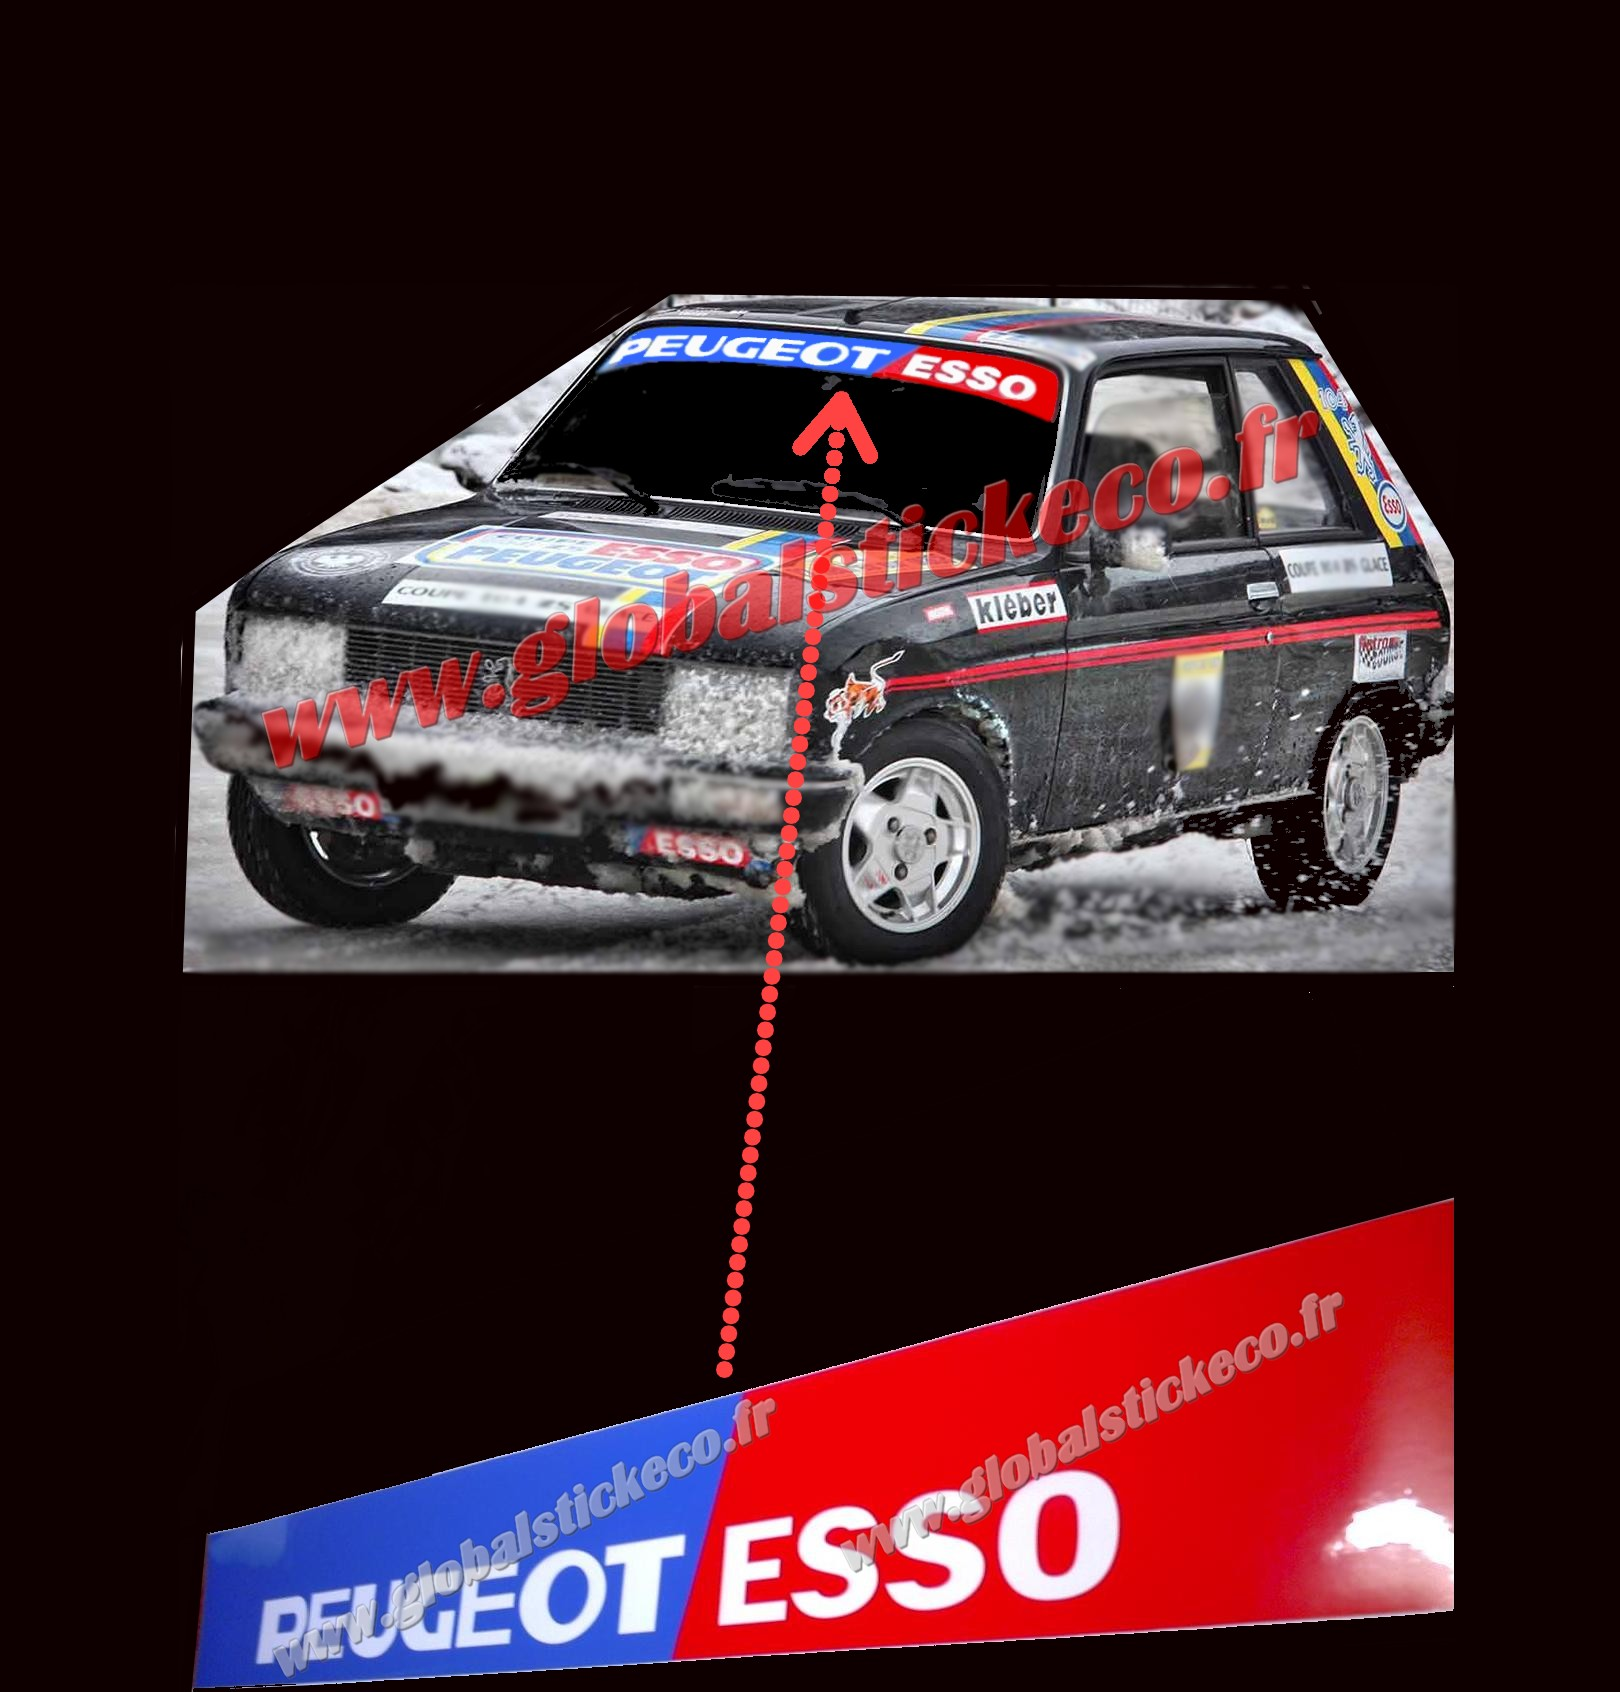 Tag peugeot 104 zs 015